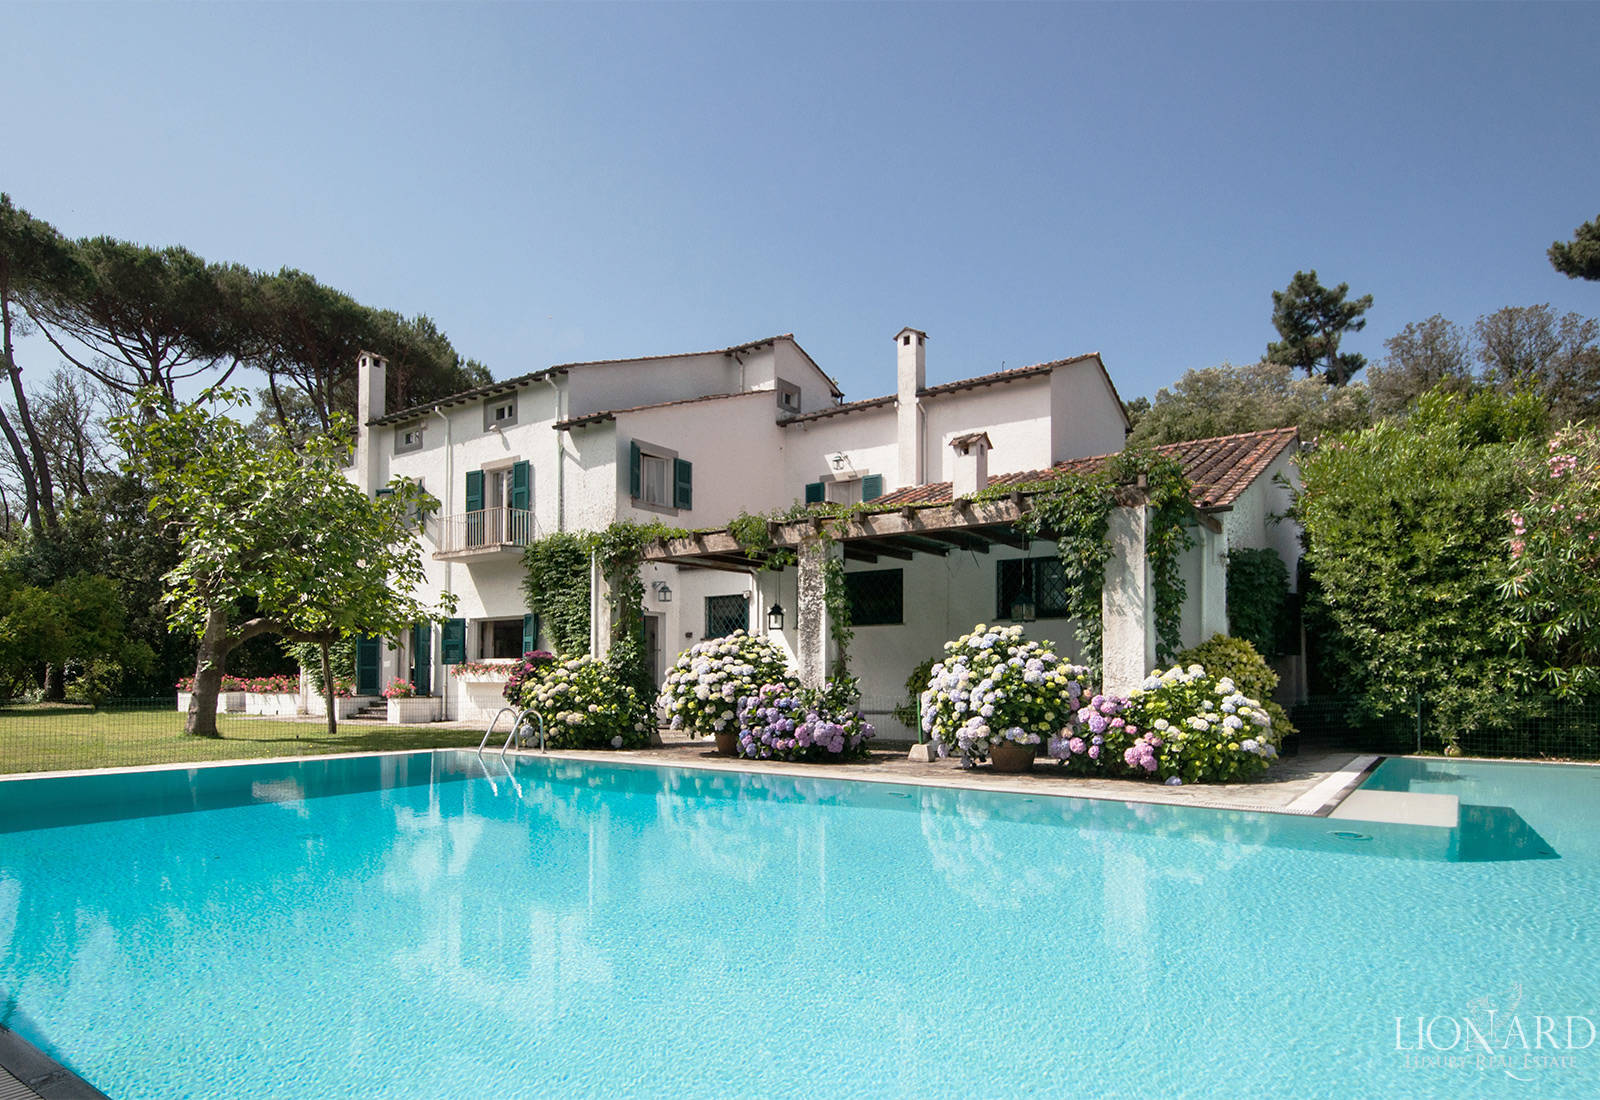 Villas for sale in Roma Imperiale - Forte dei Marmi